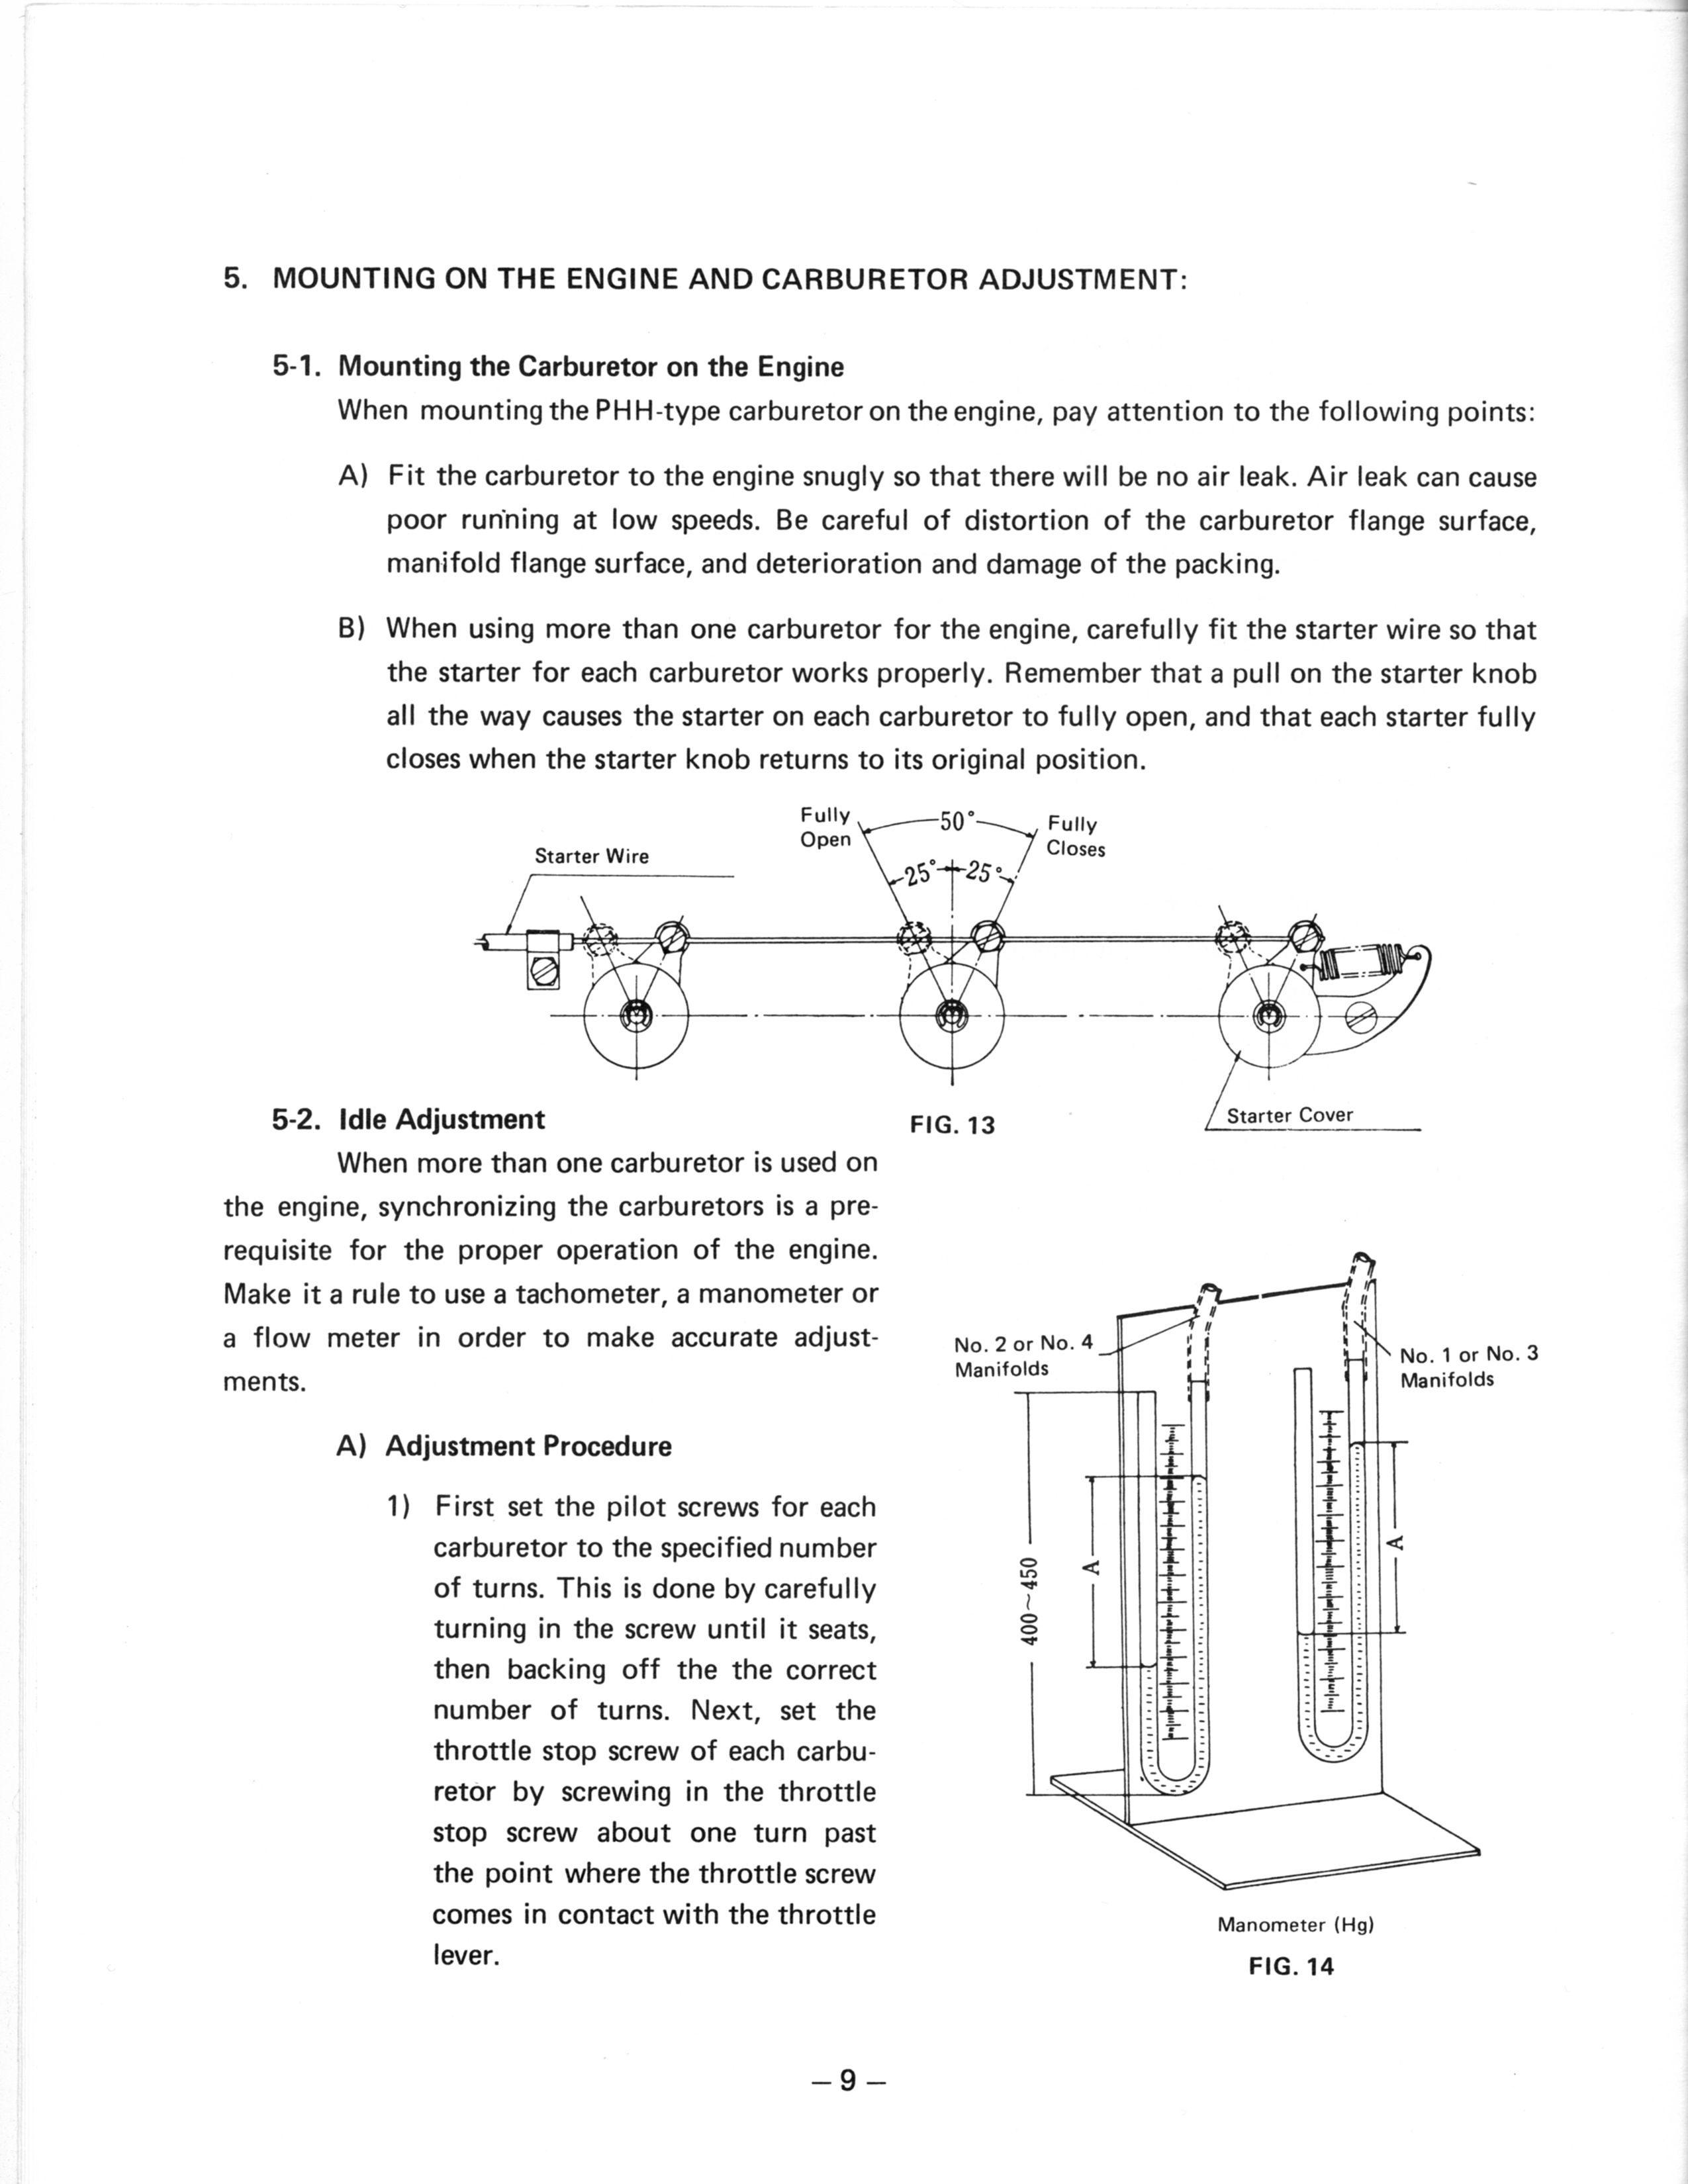 Welcome To Mikuni Power Rs Series Carburetors Need A Diagram Or Picture Of How The Carburetor Adjustments 10